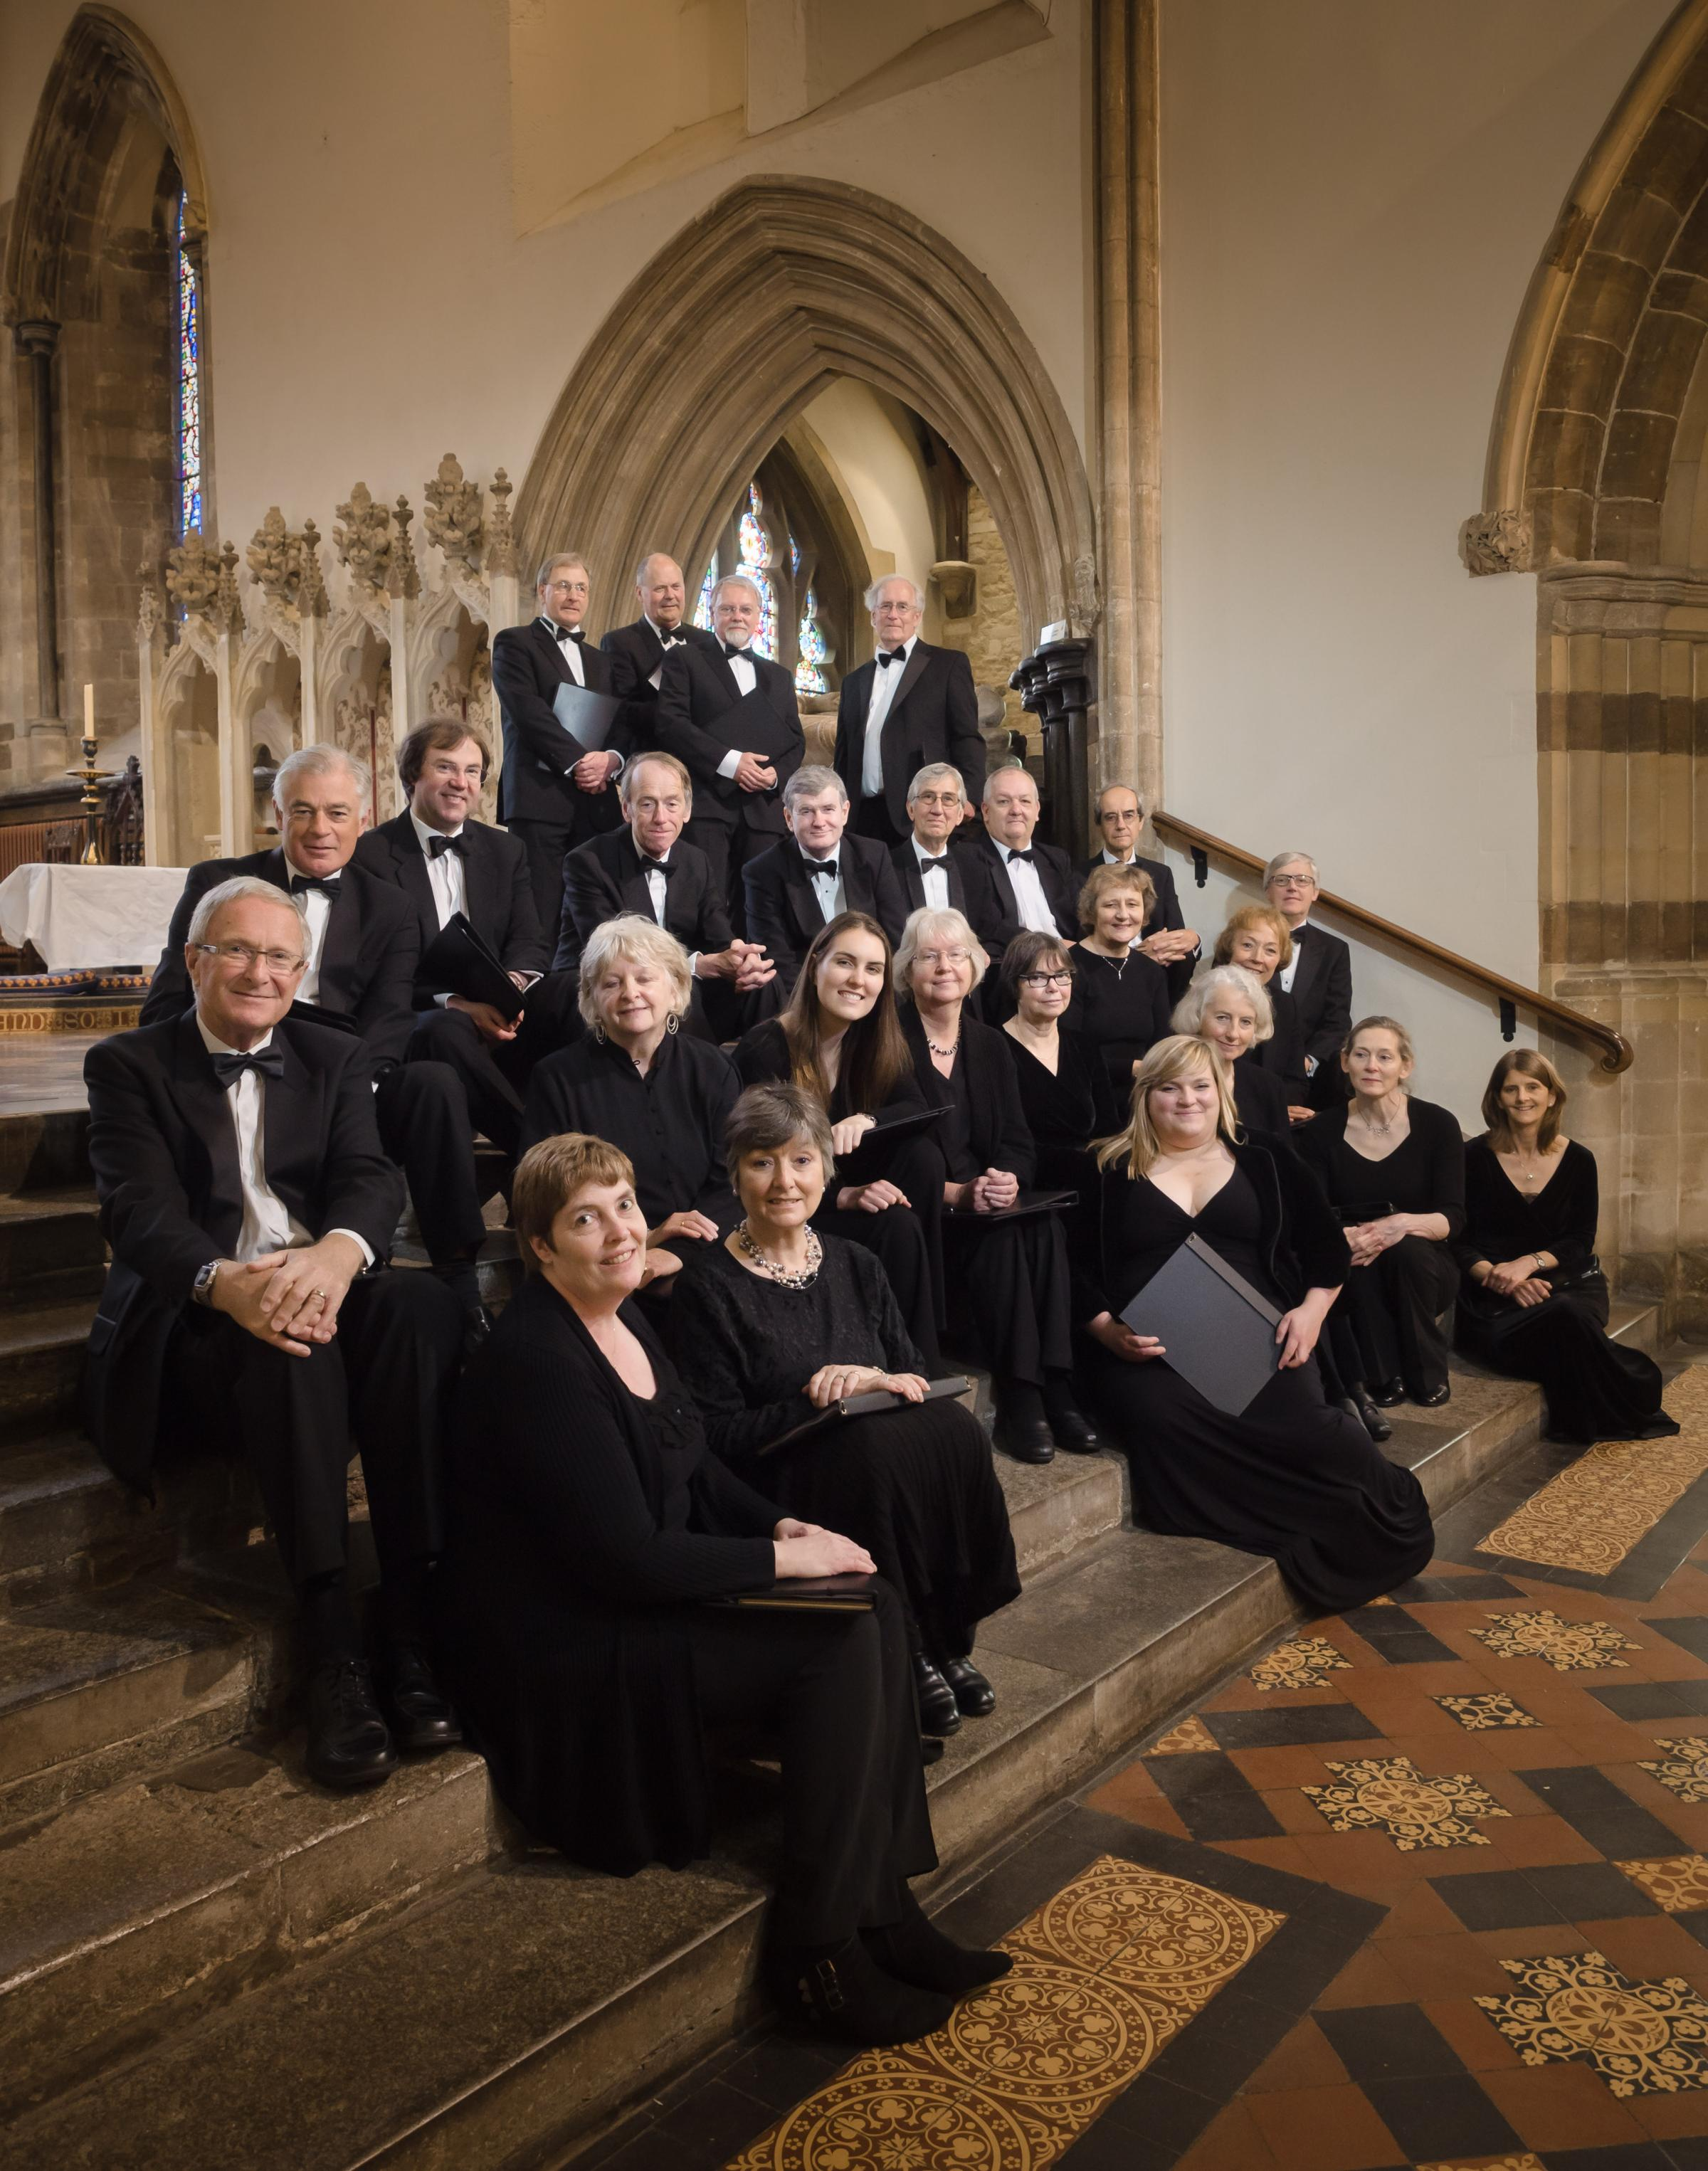 Bournemouth Sinfonietta Choir - Israel in Egypt